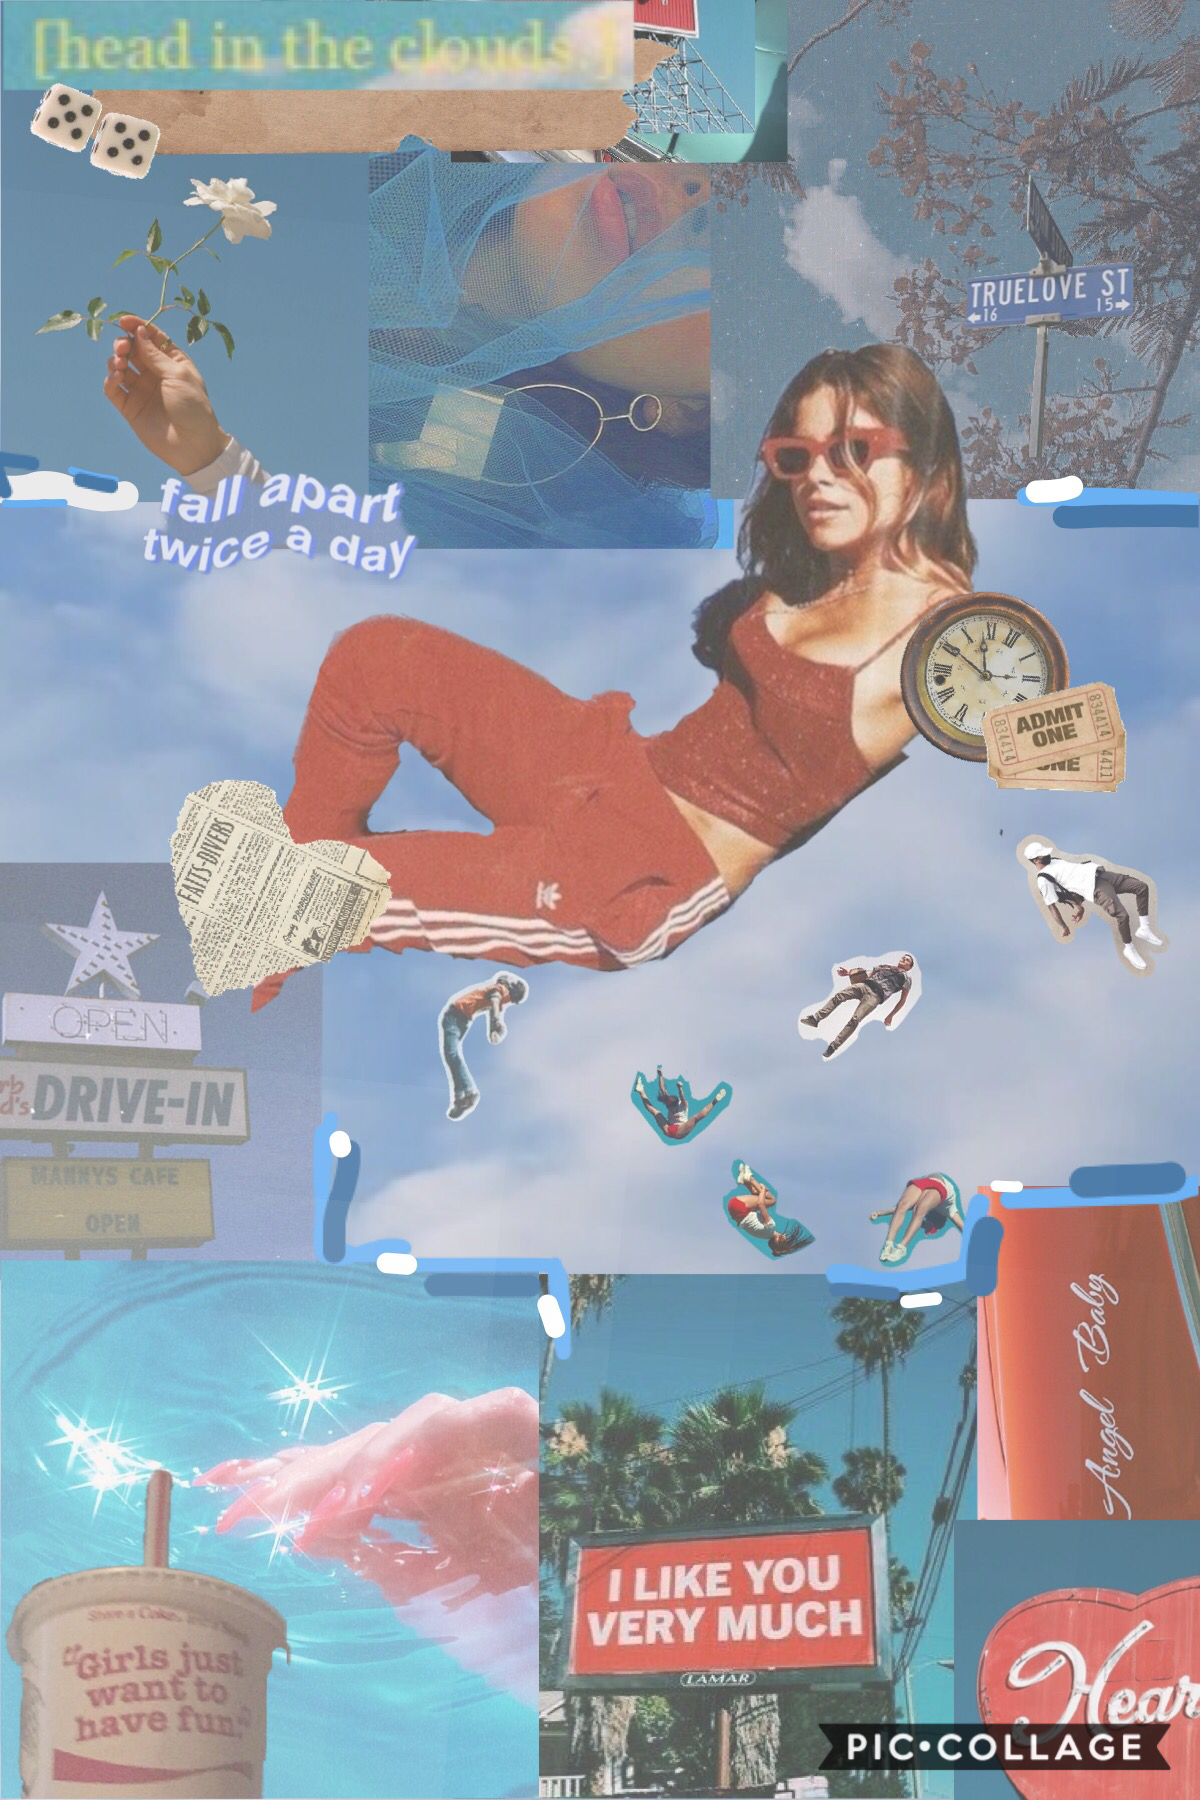 💦tap💦  here is another collage!!!!  please give honest feedback on my new style and what i should do to make it the best it can be!  8/19/20